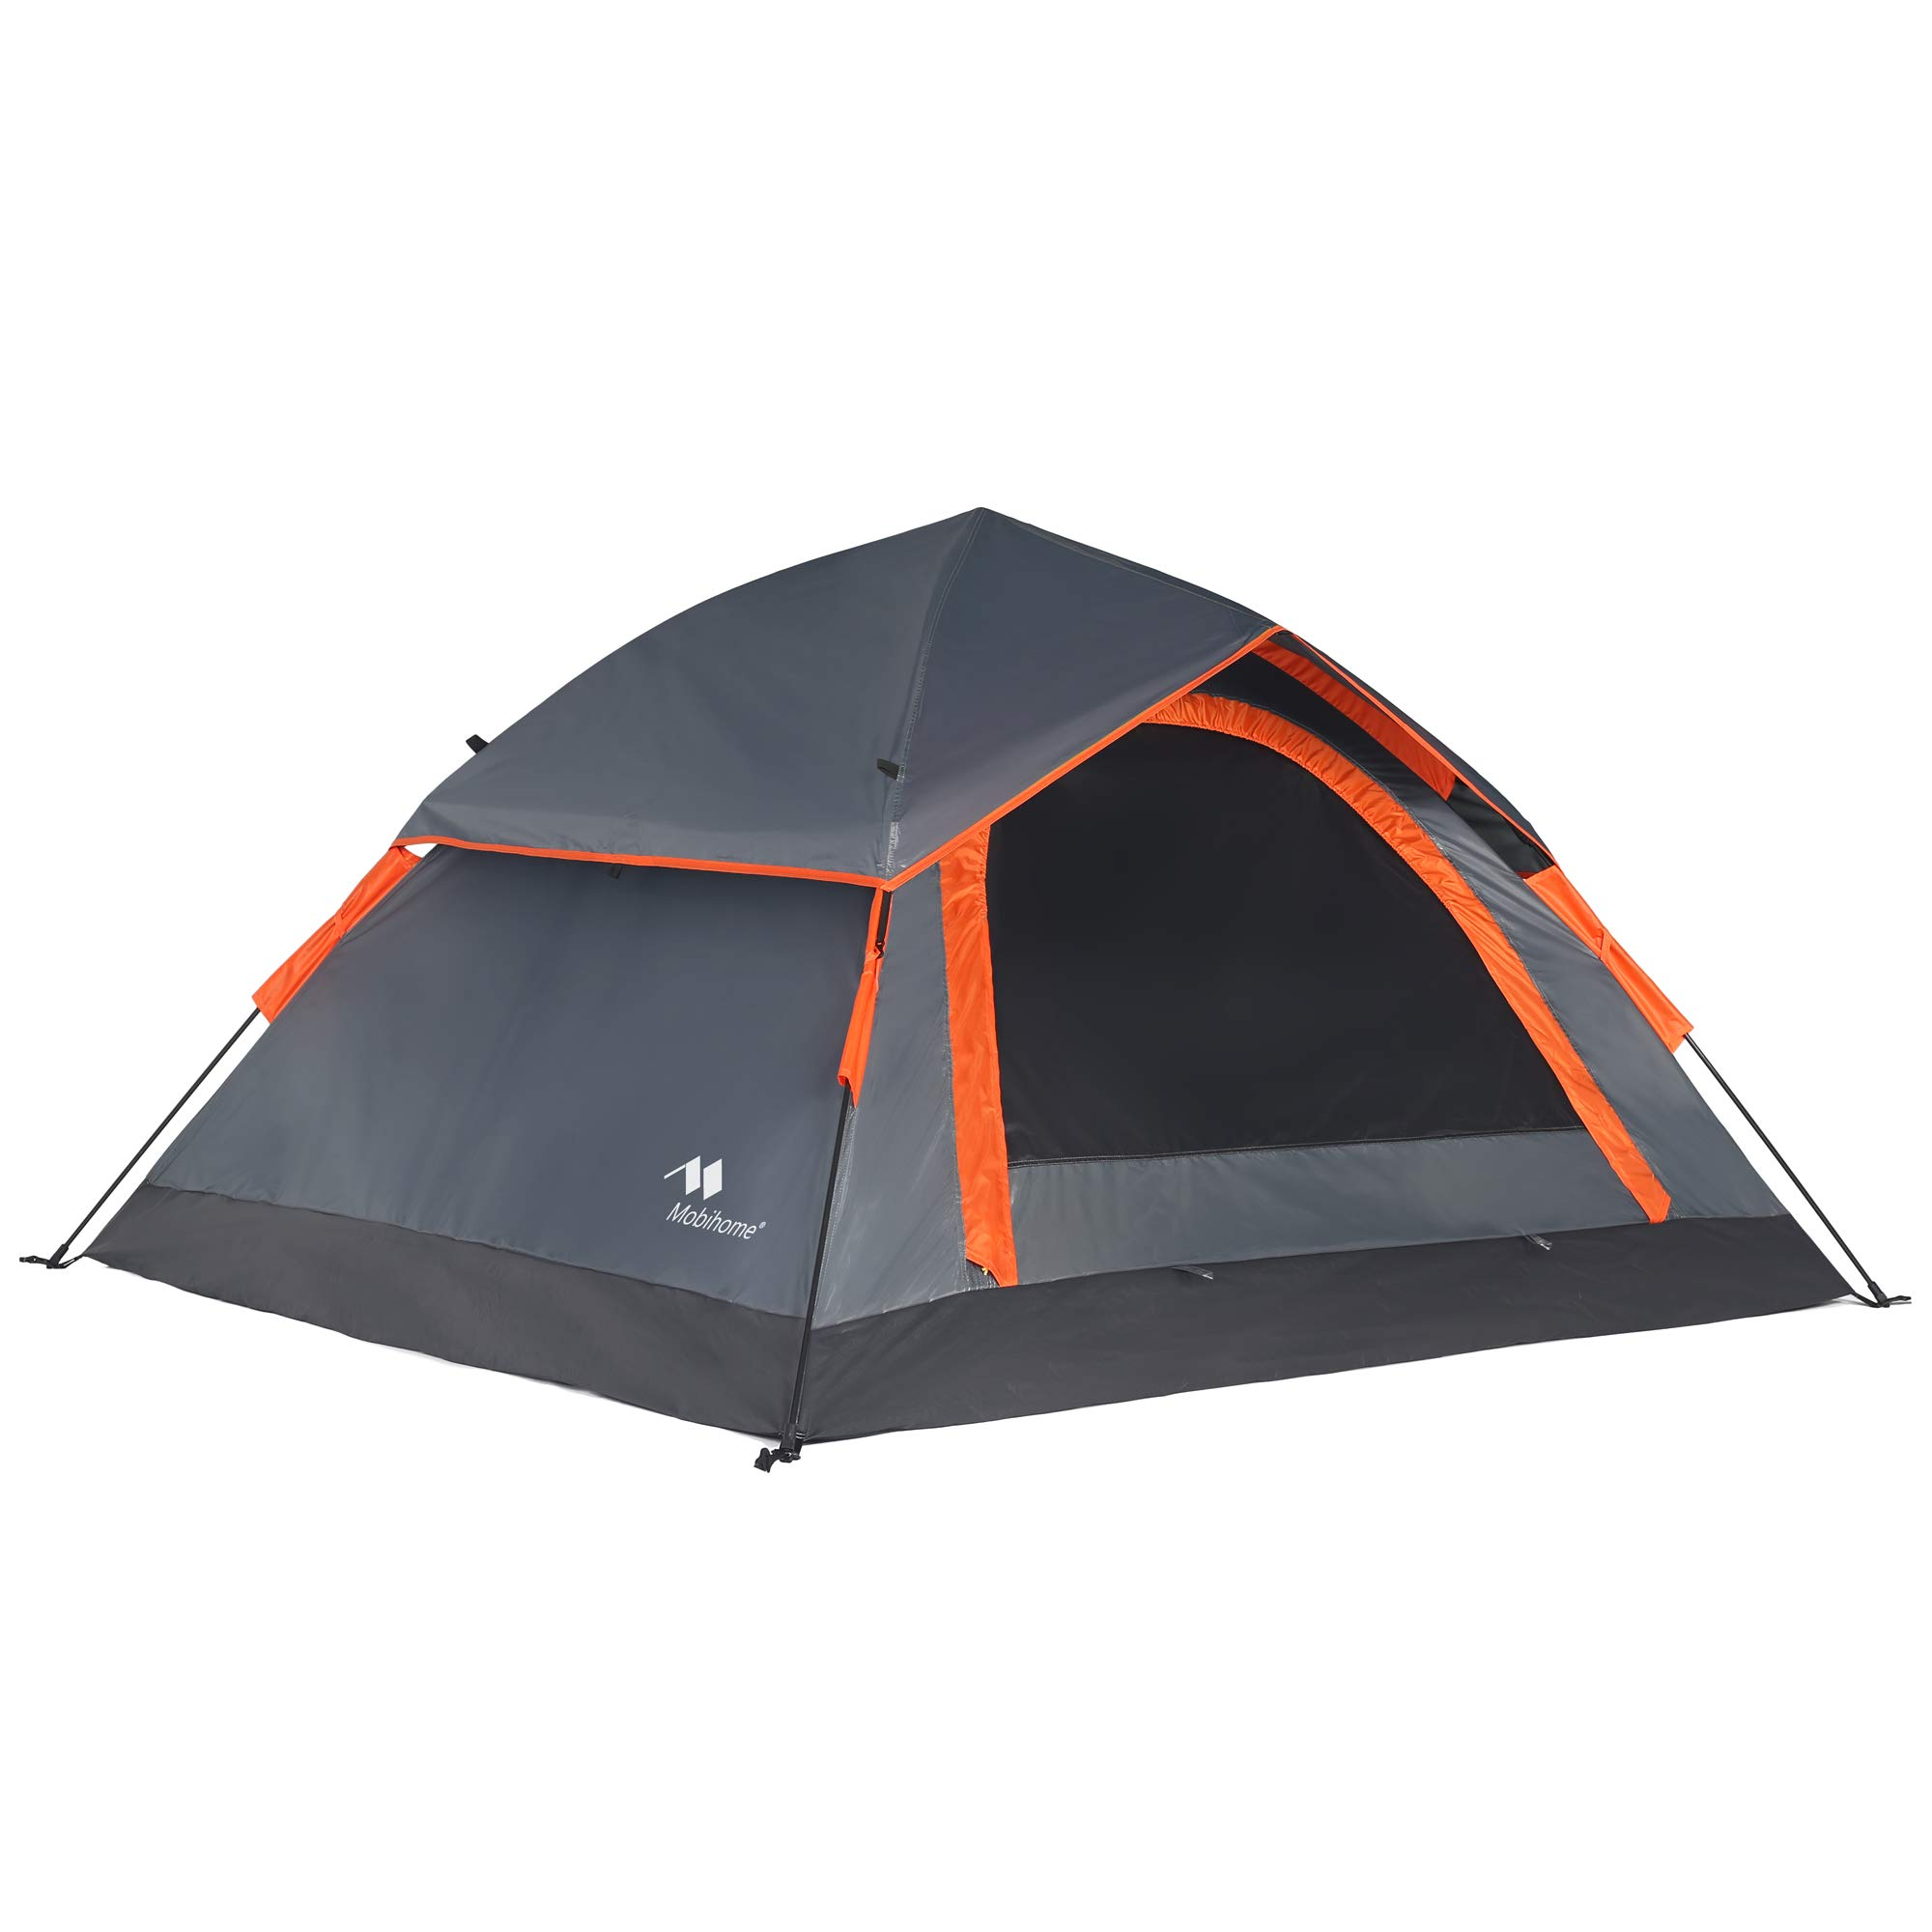 Mobihome Camping Backpacking Tent 2 3 Person Easy Setup, Instant Quick Up Portable Dome Tents for 3-Seasons Hiking & Mountain Outdoor, with Water-Resistant Rainfly and Ventilated Top Mesh - 7' x 6.3' by Mobihome